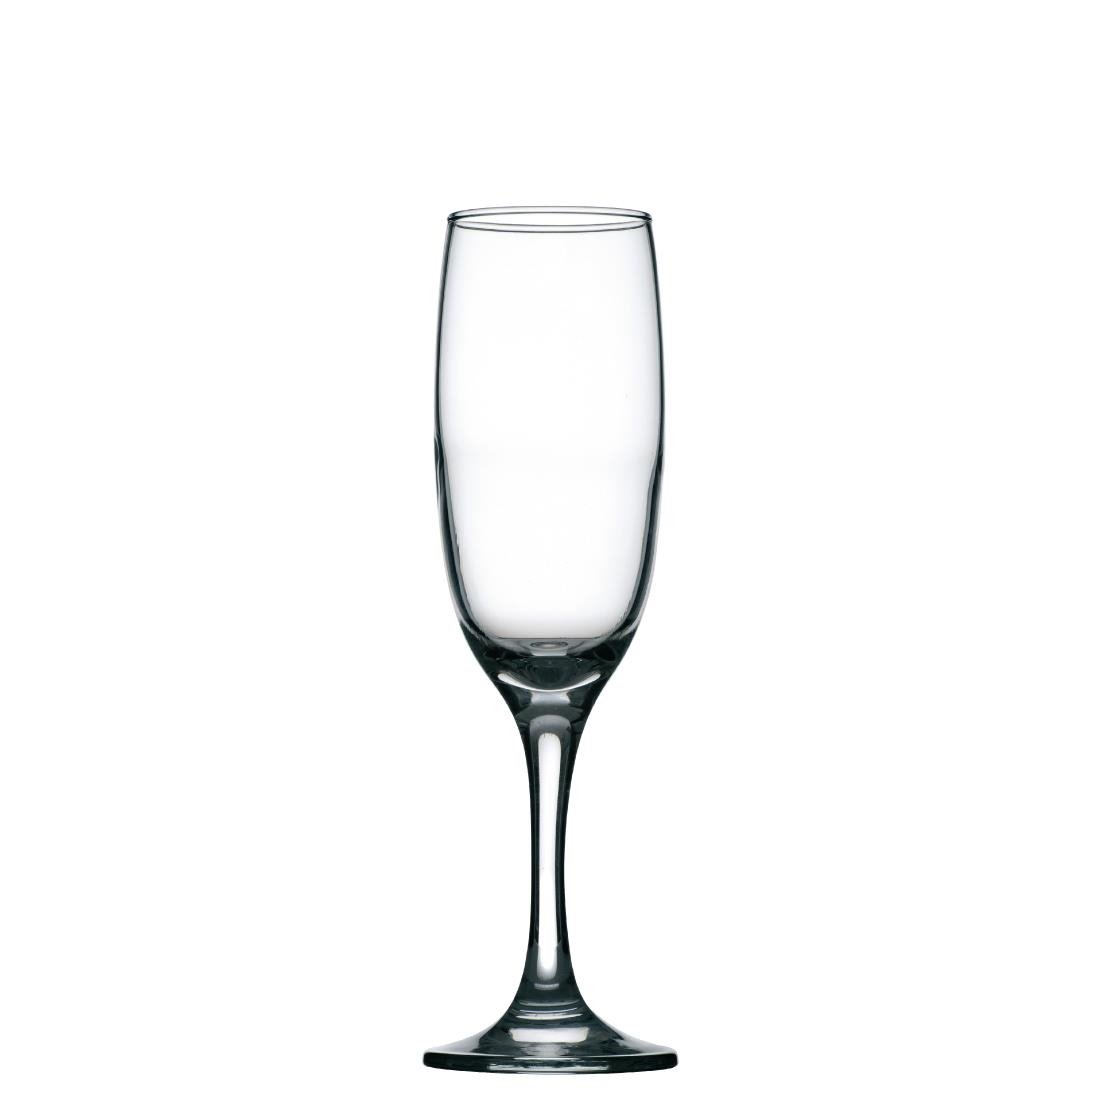 Utopia Imperial Champagne Flutes 210ml (Pack of 24)